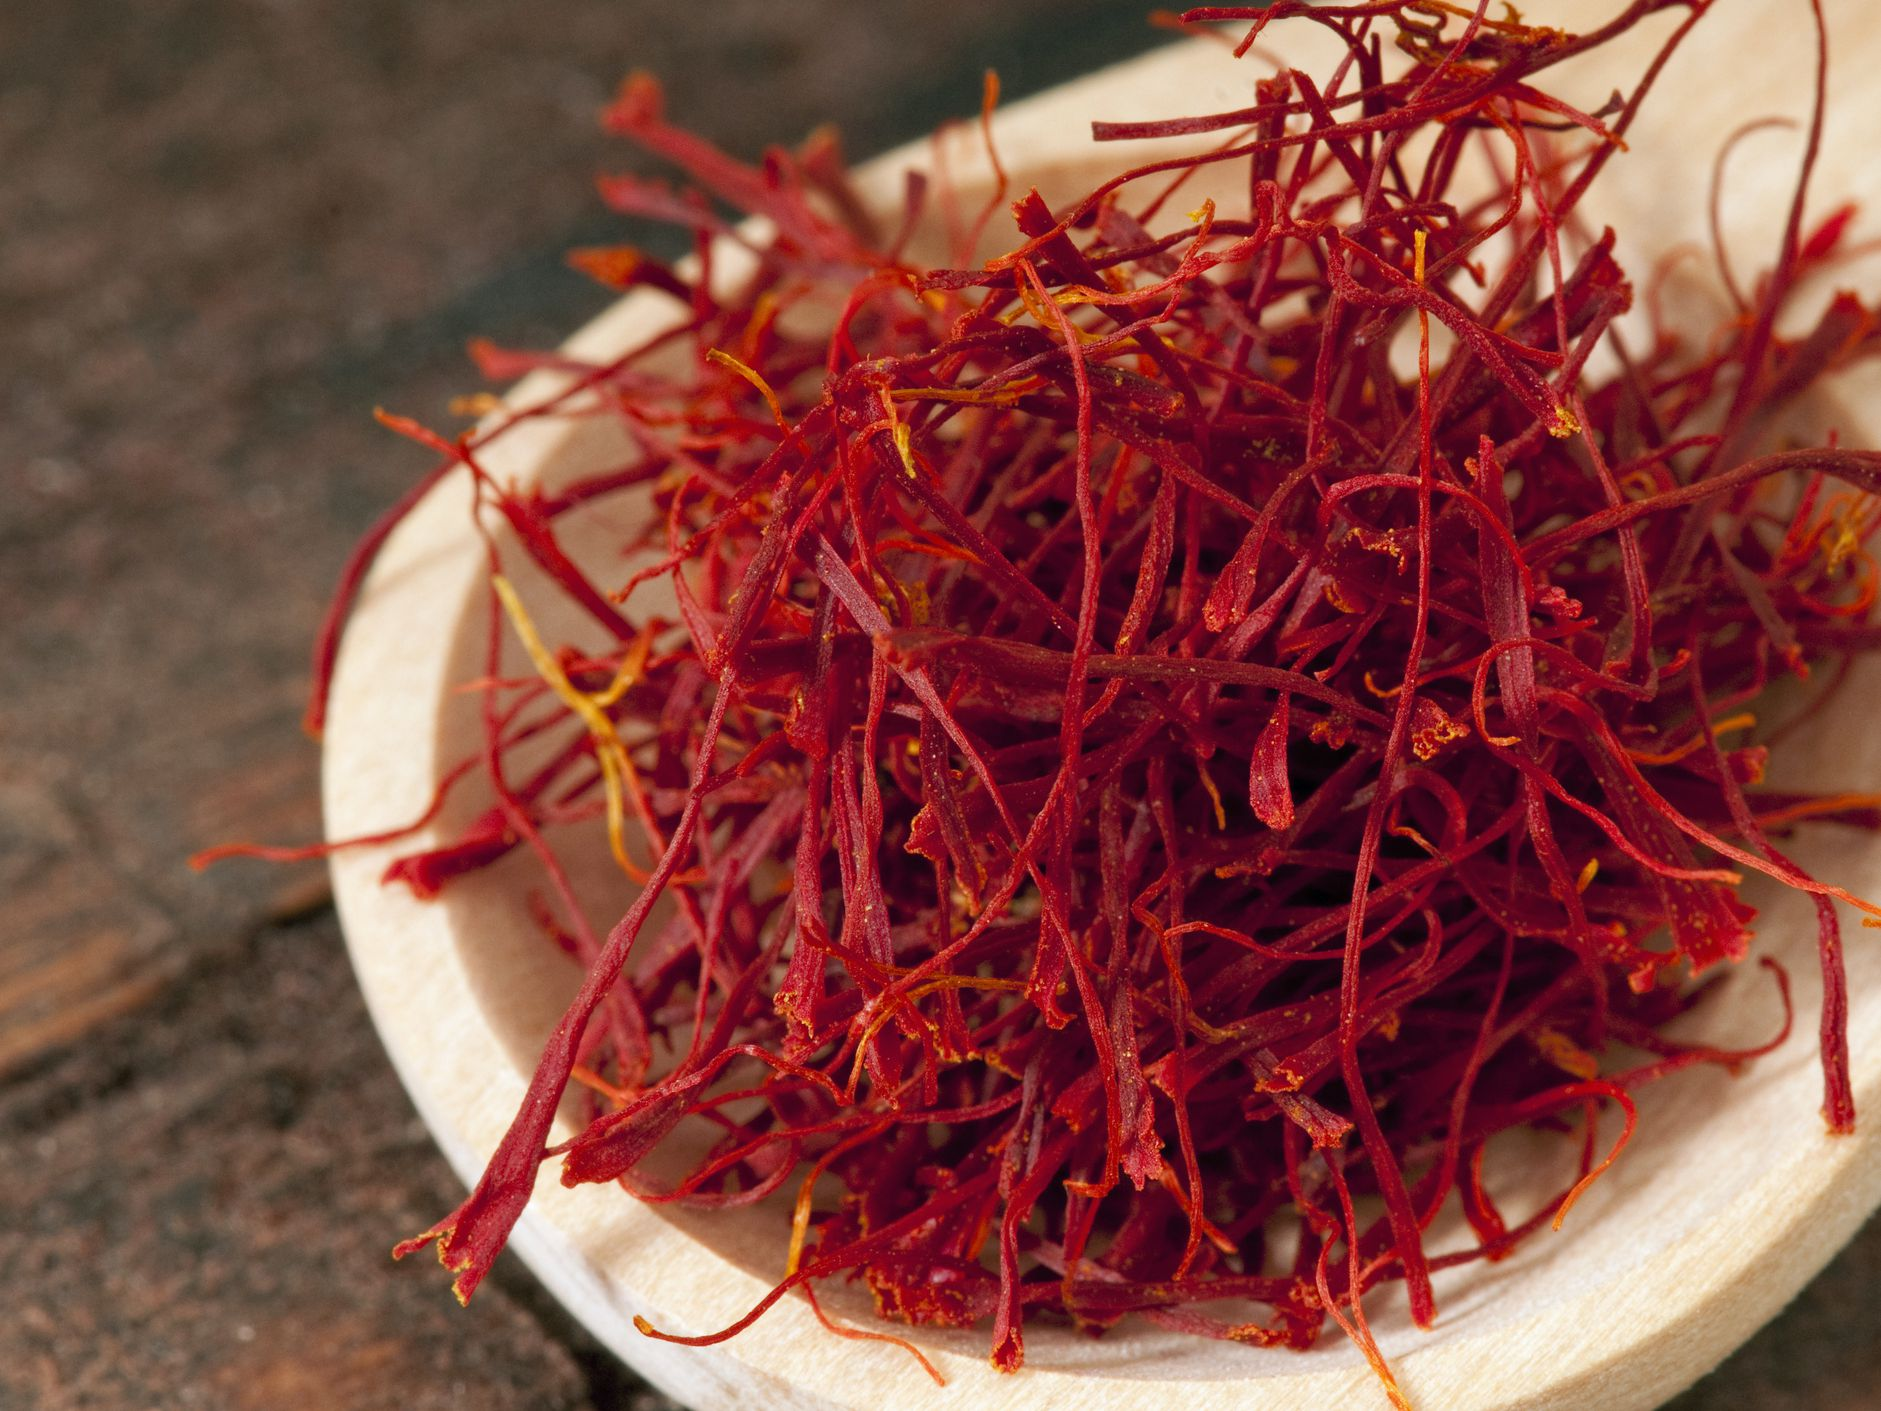 saffron: benefits, side effects, and preparations